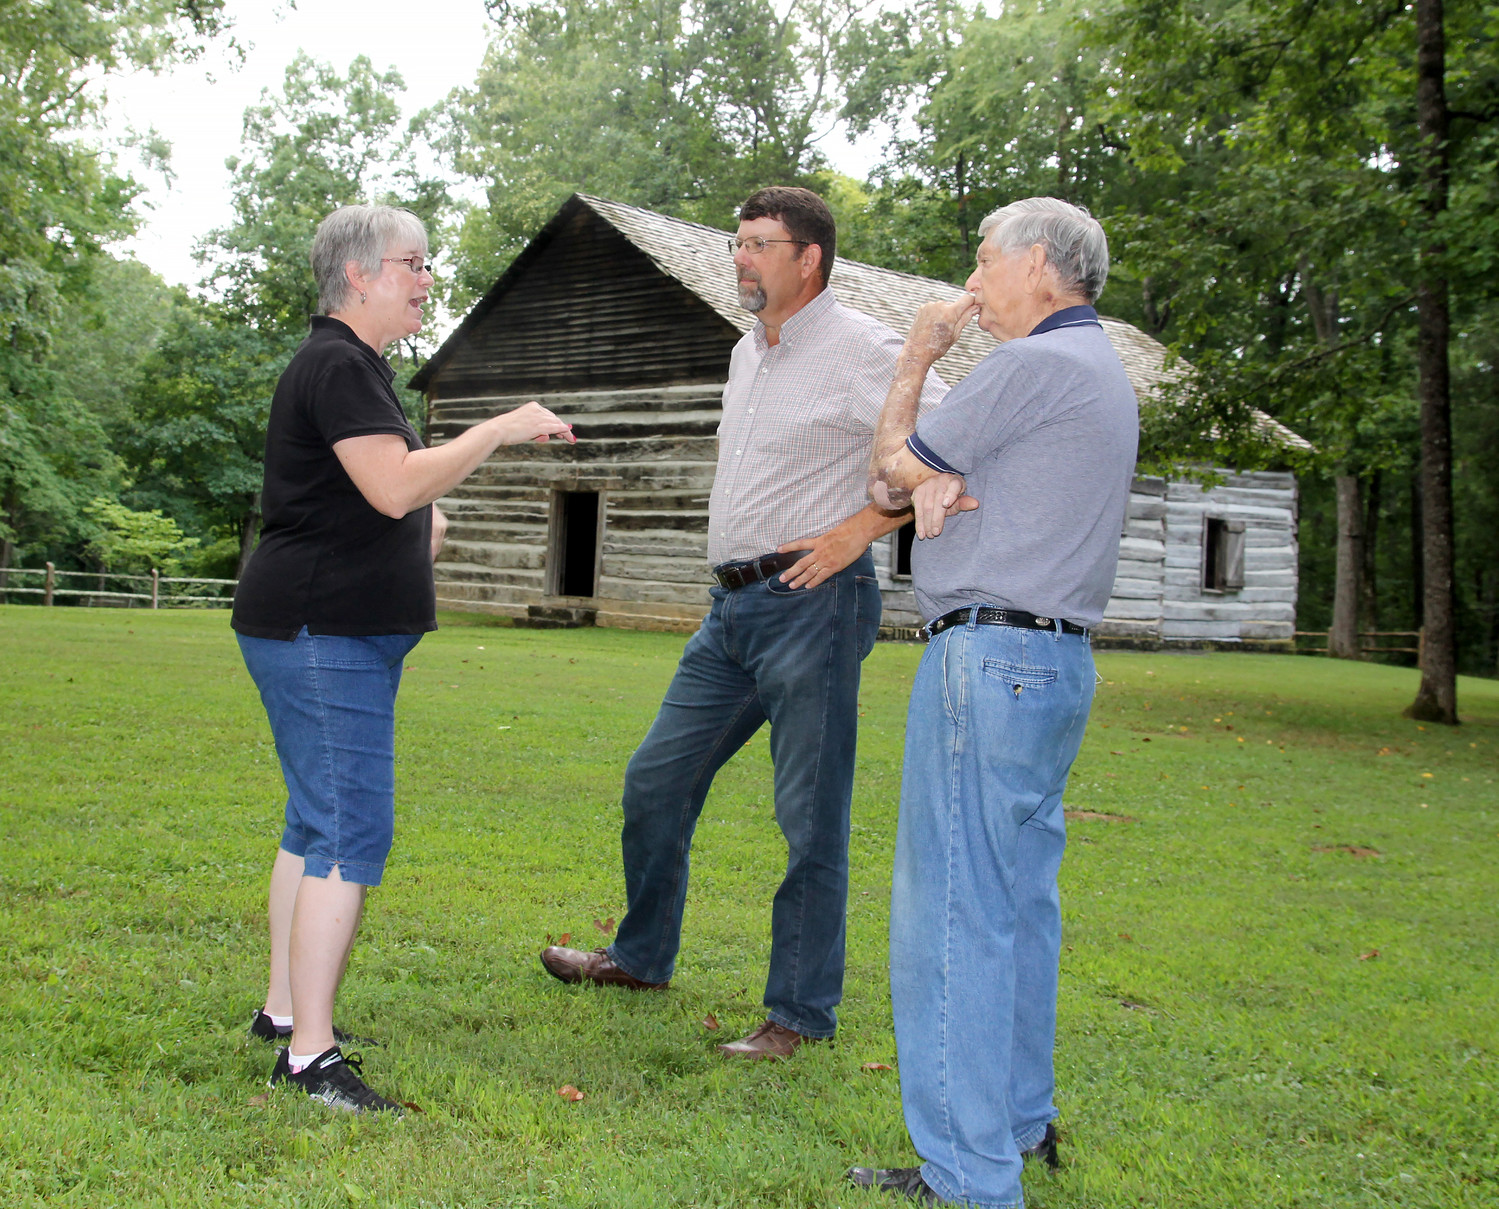 Old Mulkey Meetinghouse State Historic Site park manager Sheila Jobe, left, talks with Pastor Larry Lowe, center, and Associational Mission Strategist John Jordan outside a building that once was home to Mill Creek Baptist Church.  (Kentucky Today/Roger Alford)